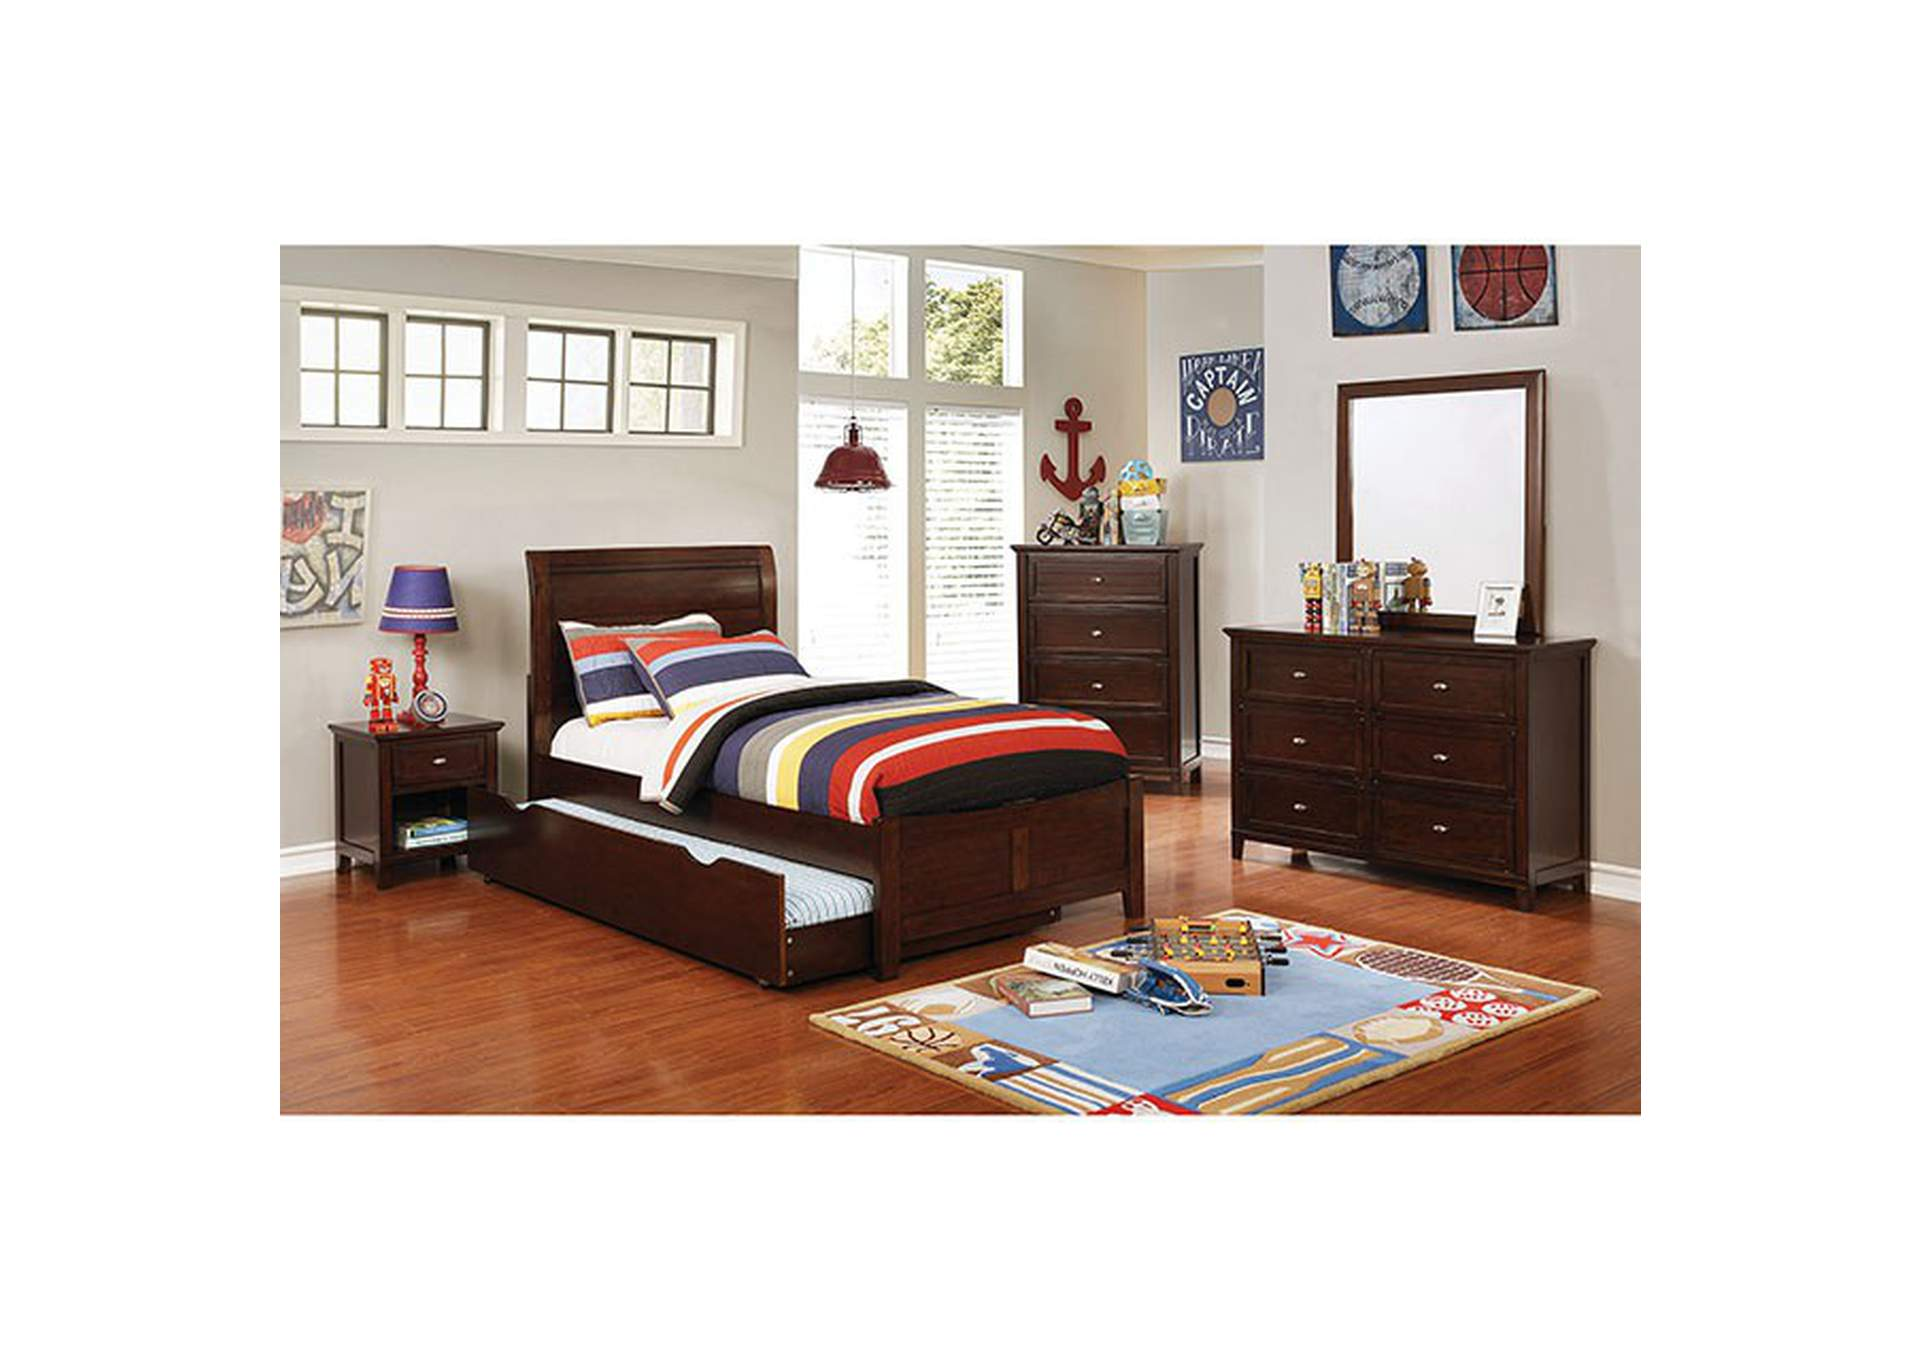 Brogan Brown Cherry Full Bed,Furniture of America